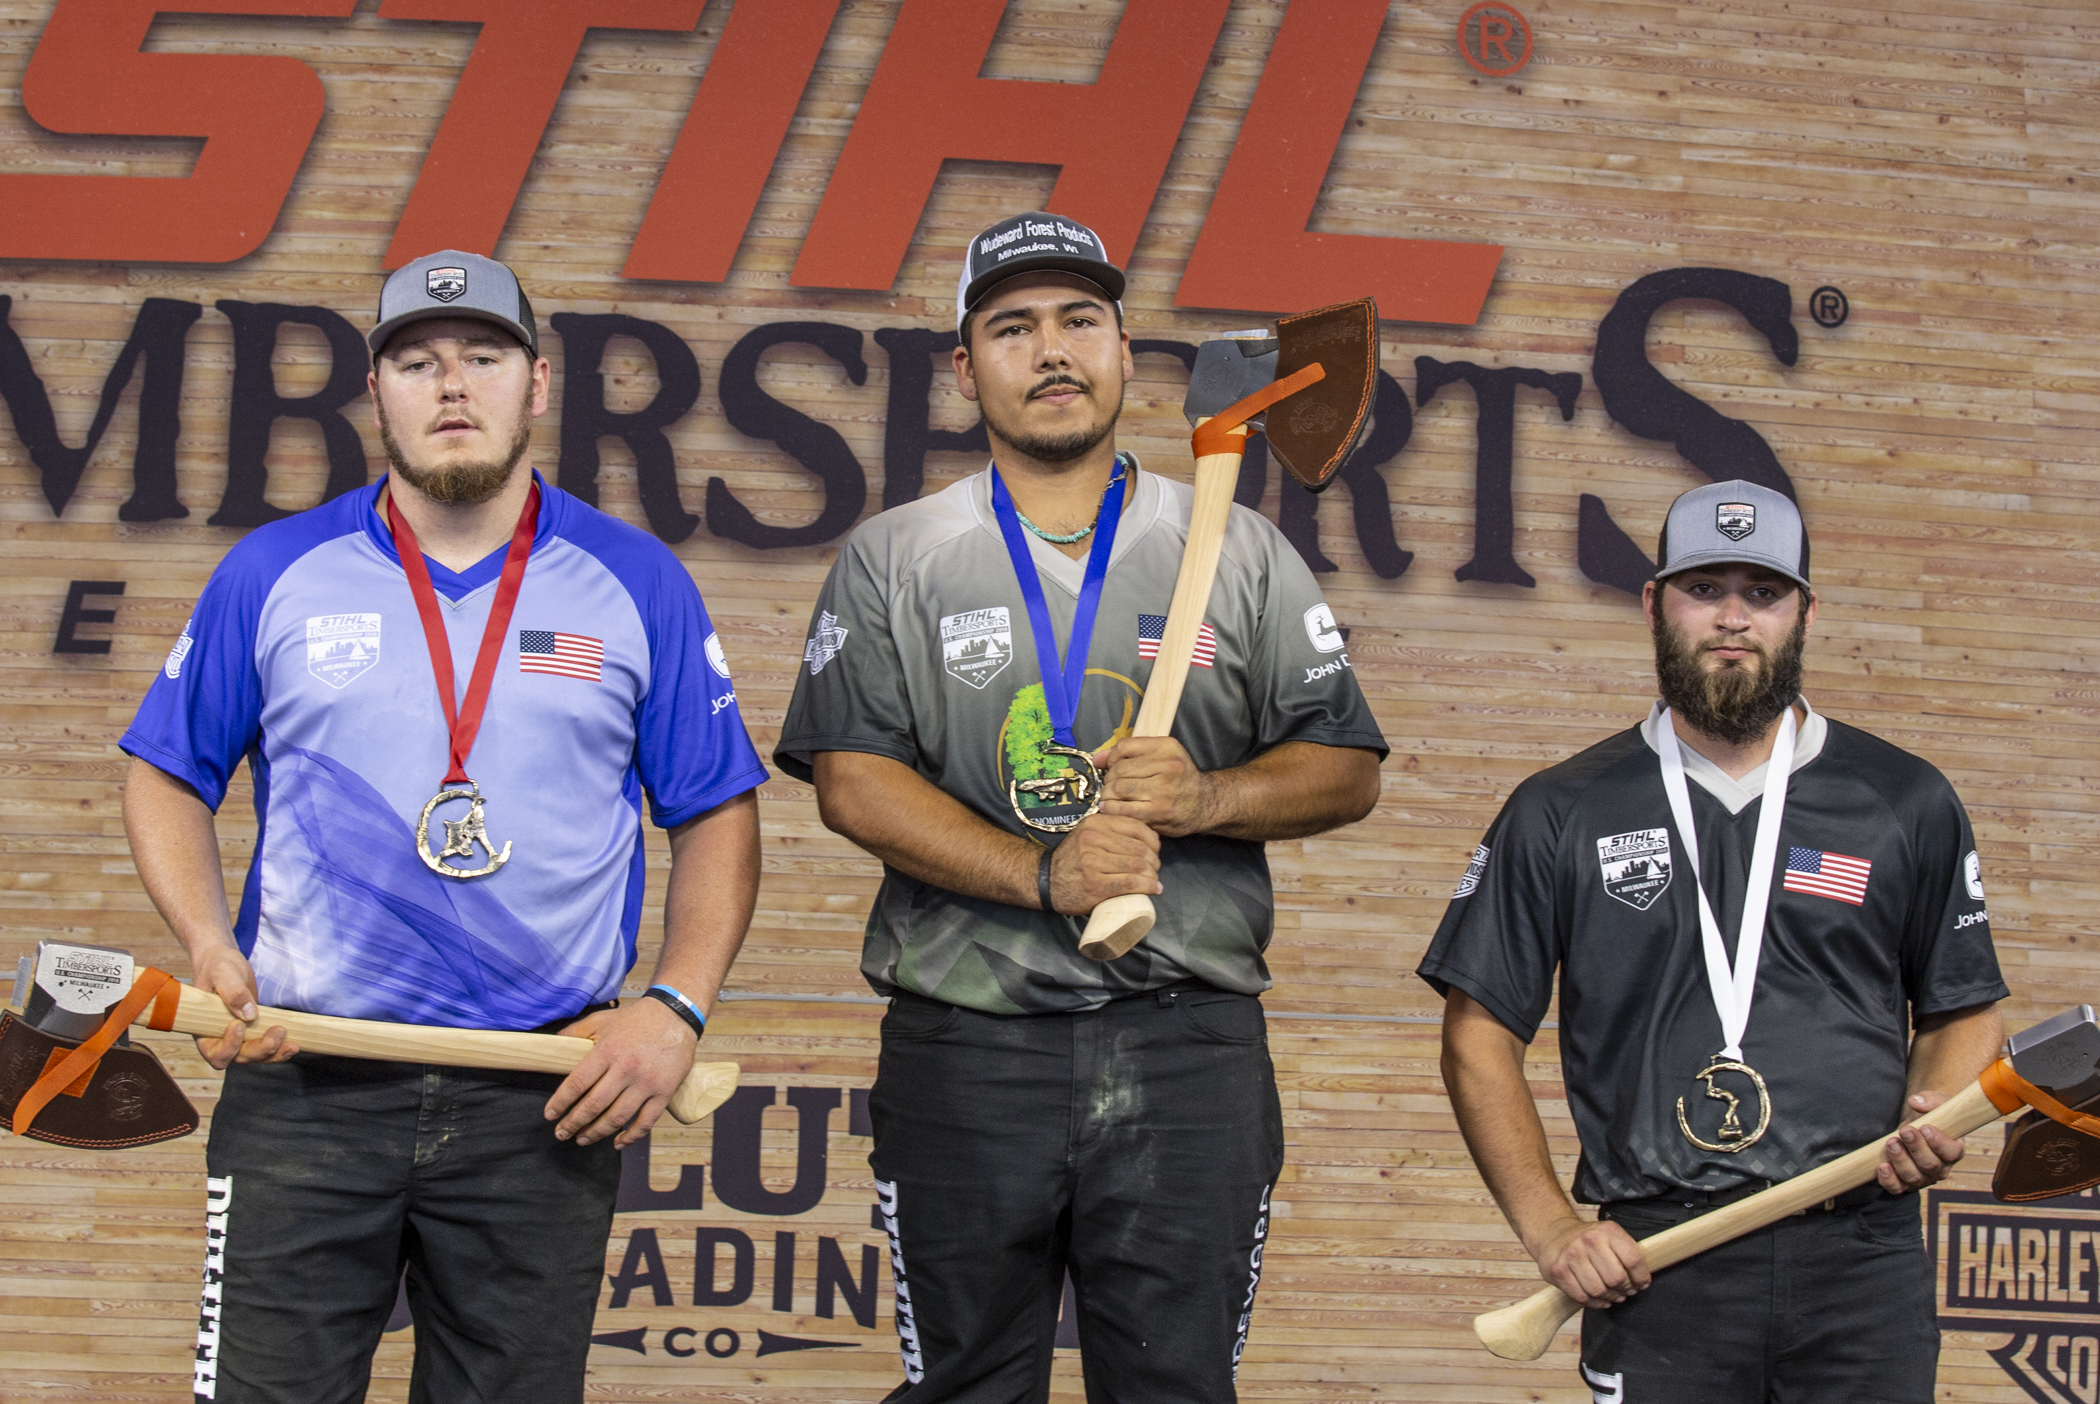 Rainer Shooter of the University of Wisconsin-Stevens Point wins the Collegiate Championship